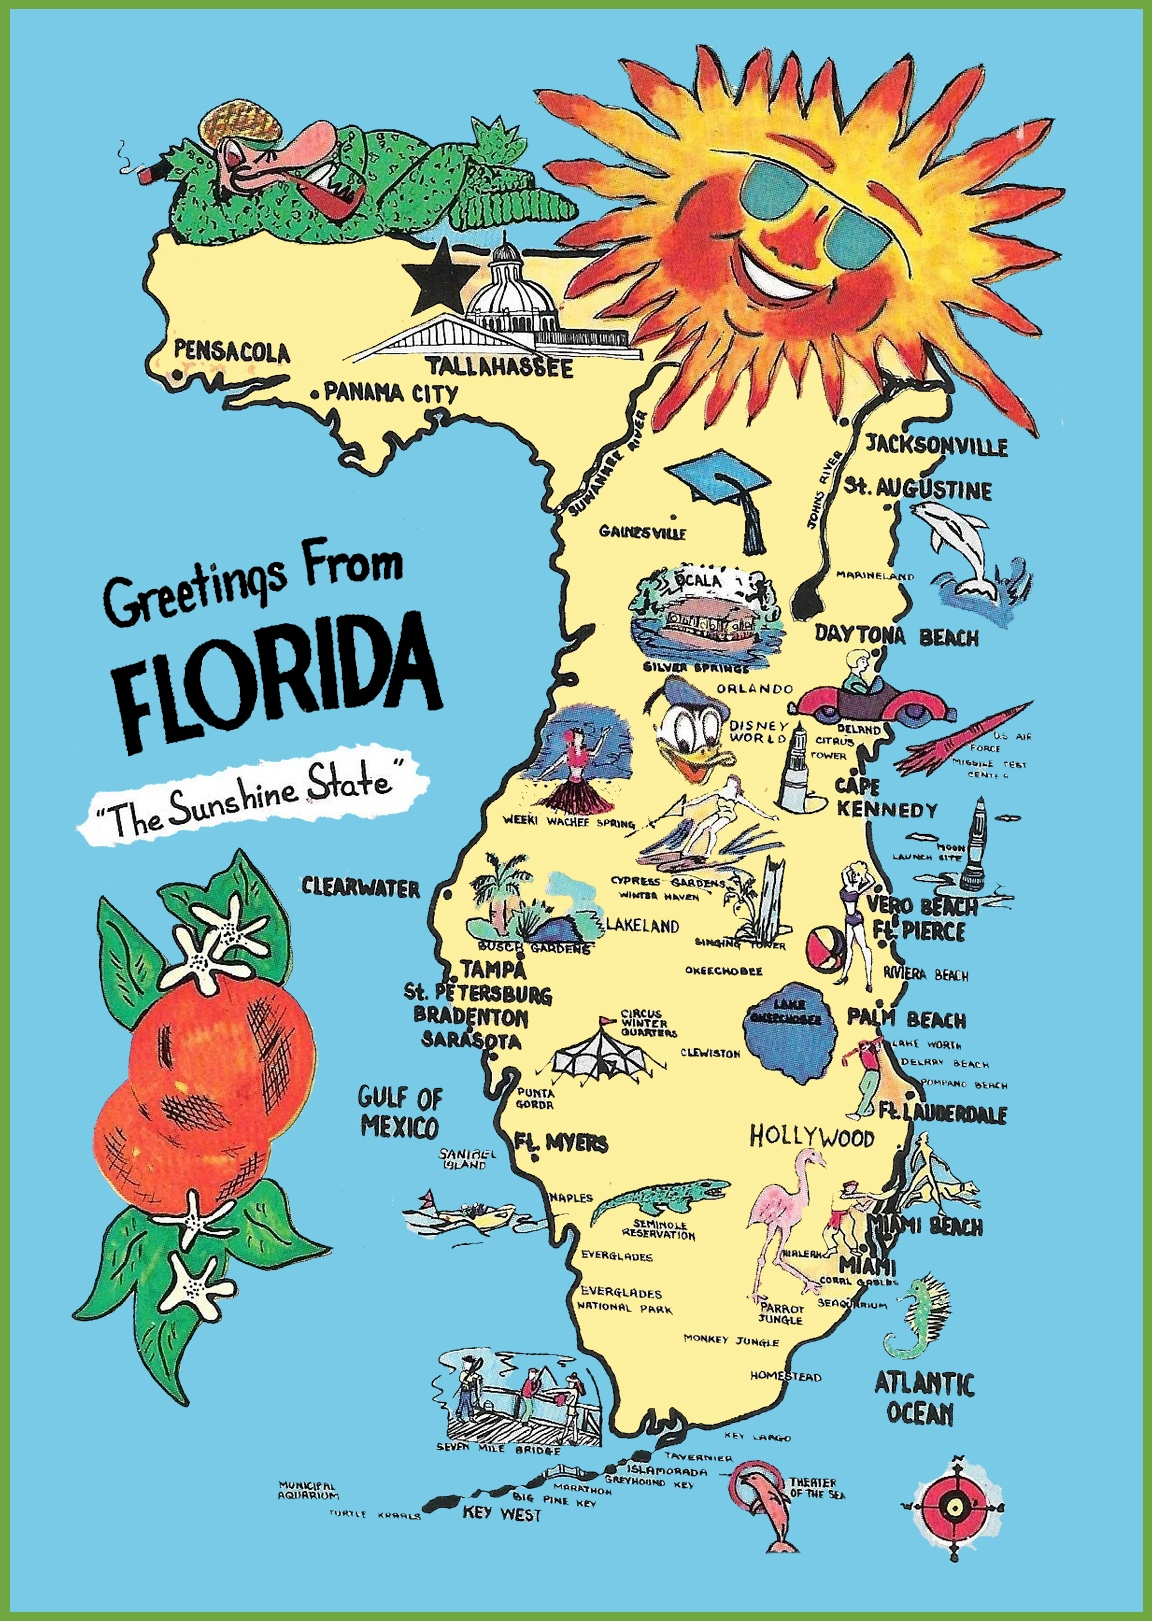 an outsiders map of Florida